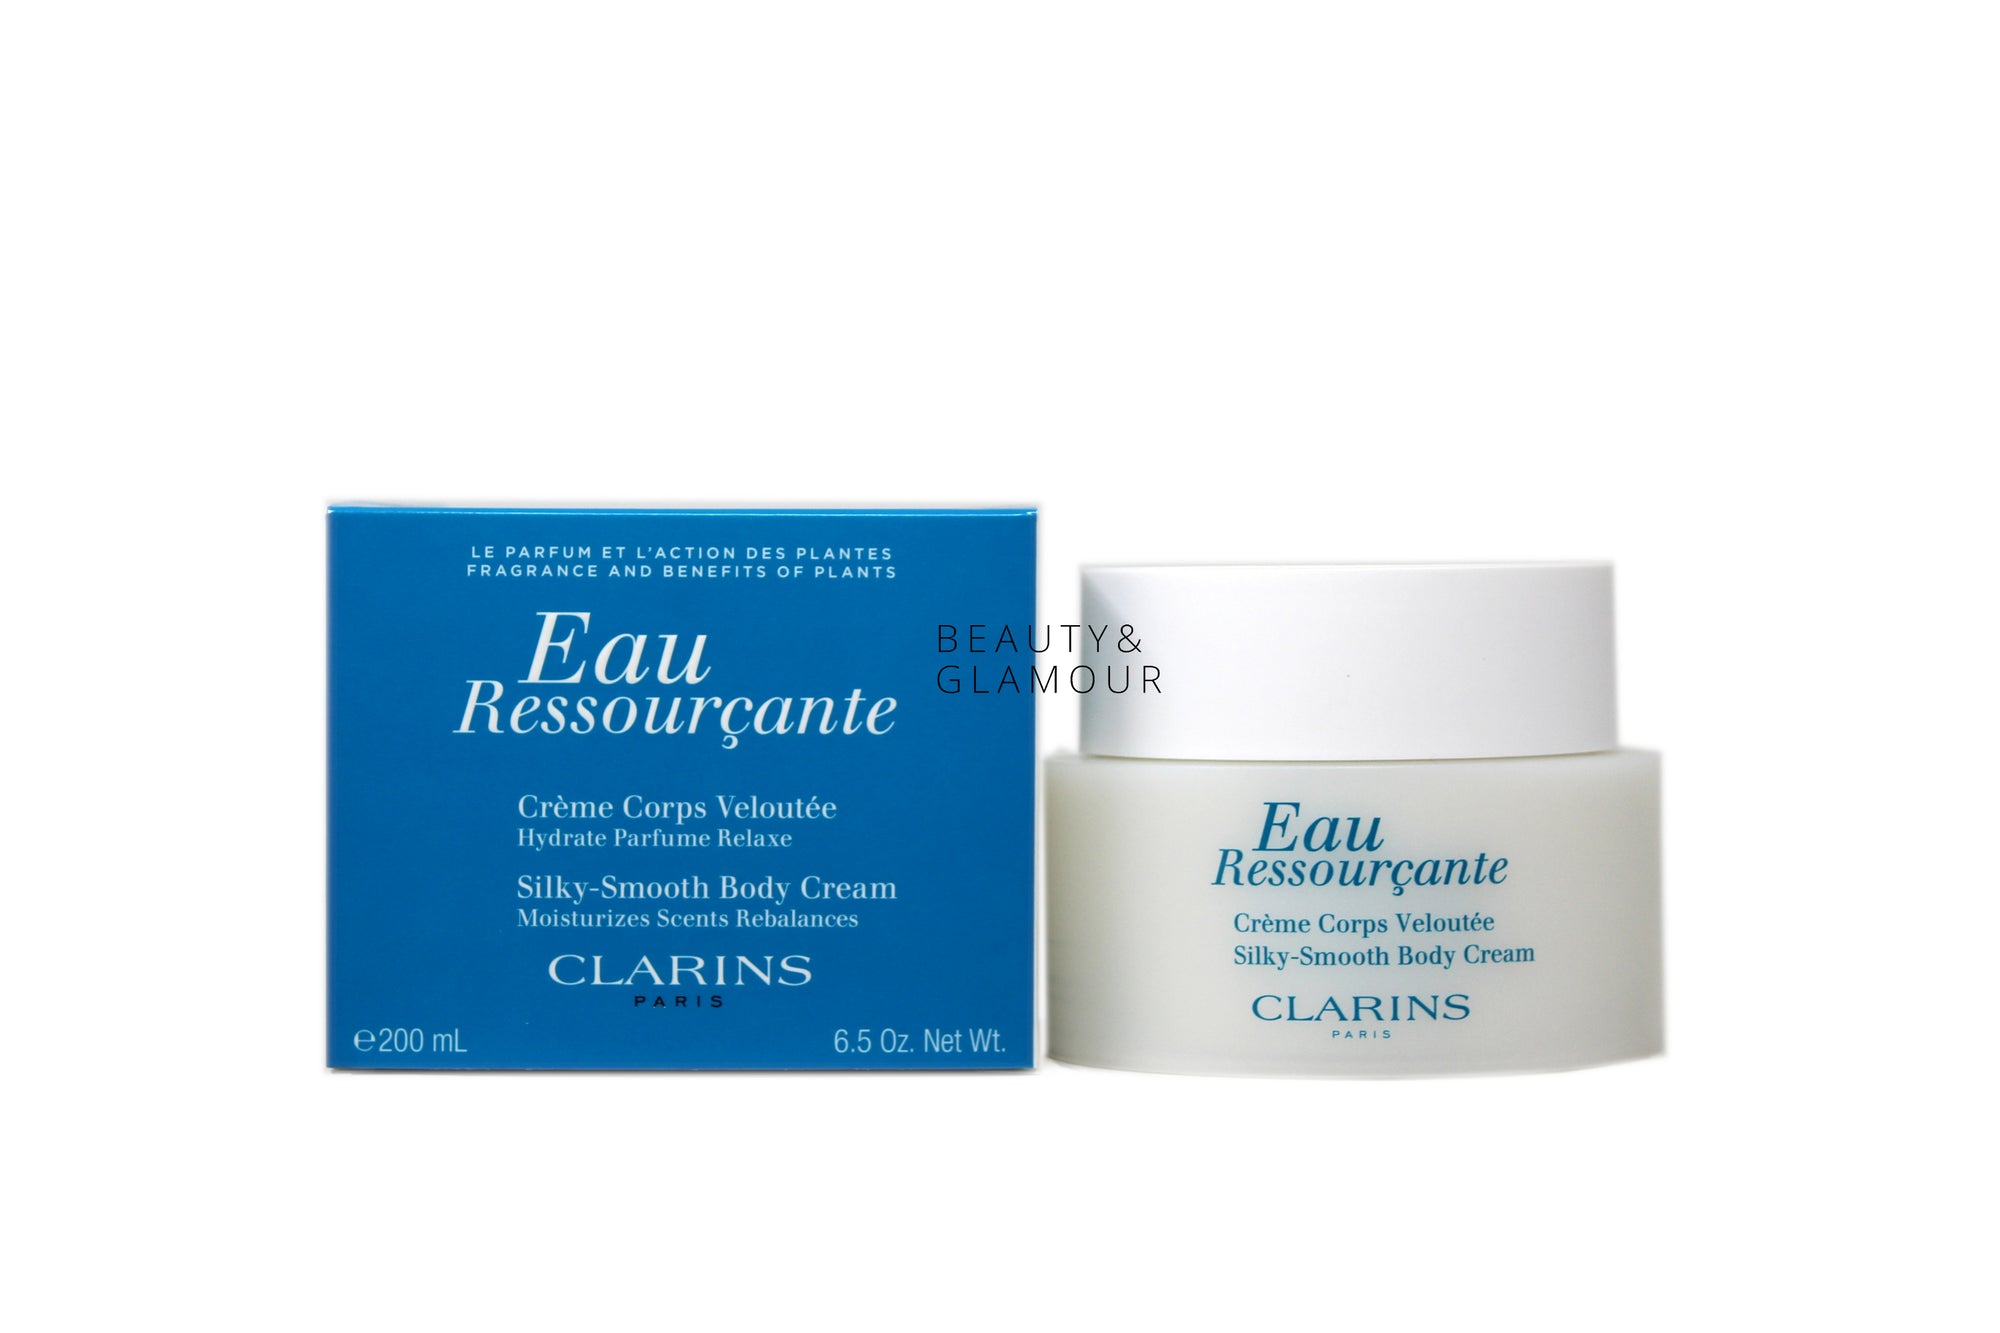 CLARINS EAU RESSOURCANTE SILKY - SMOOTH BODY CREAM  AVAILABLE SIZE: 200 ML/6.5 OZ.  SKIN TYPE: ALL SKIN TYPES  FORMULATION: CREAM  BENEFITS:  NOURISHES, SOFTENS, AND SOOTHES SKIN PERFUMES SKIN WITH A RELAXING, WOODY-FLORAL SCENT AROMATHERAPY PROPERTIES PROMOTE A FEELING OF CALM REFRESHING, MELTING TEXTURE GENTLE AND NON-PHOTOSENSITIZING